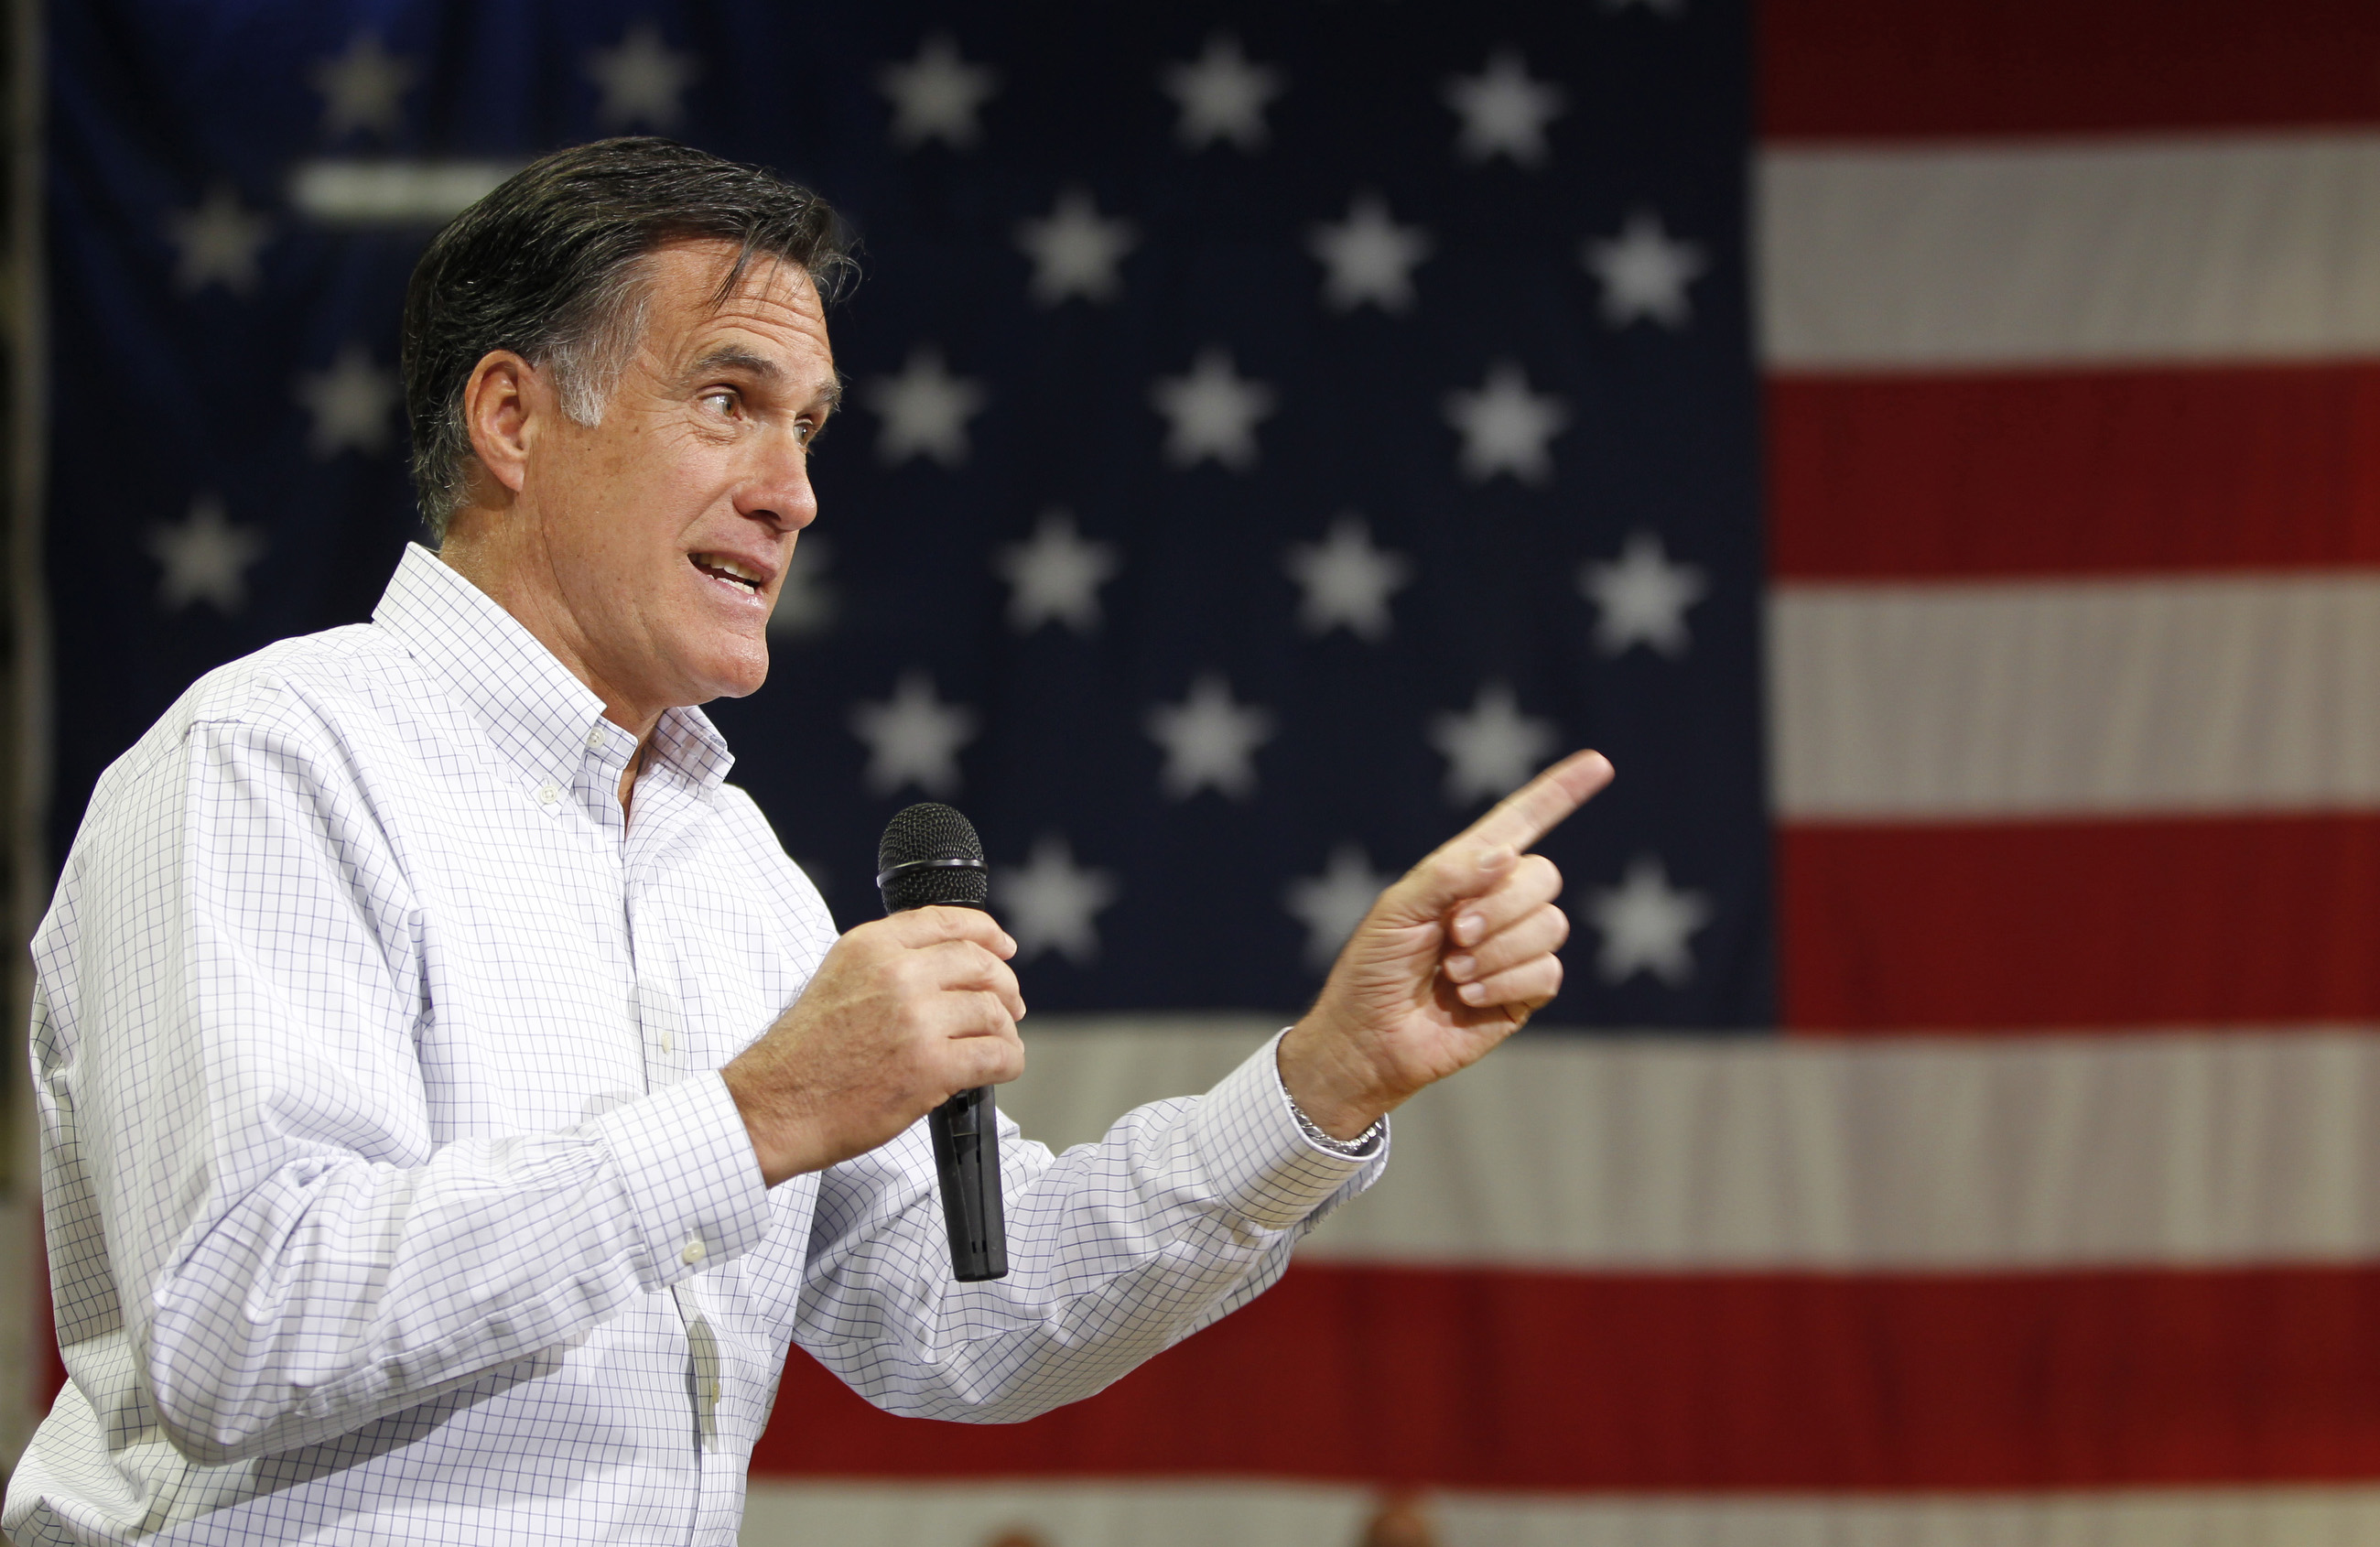 US NEWS ROMNEY 1 MCT